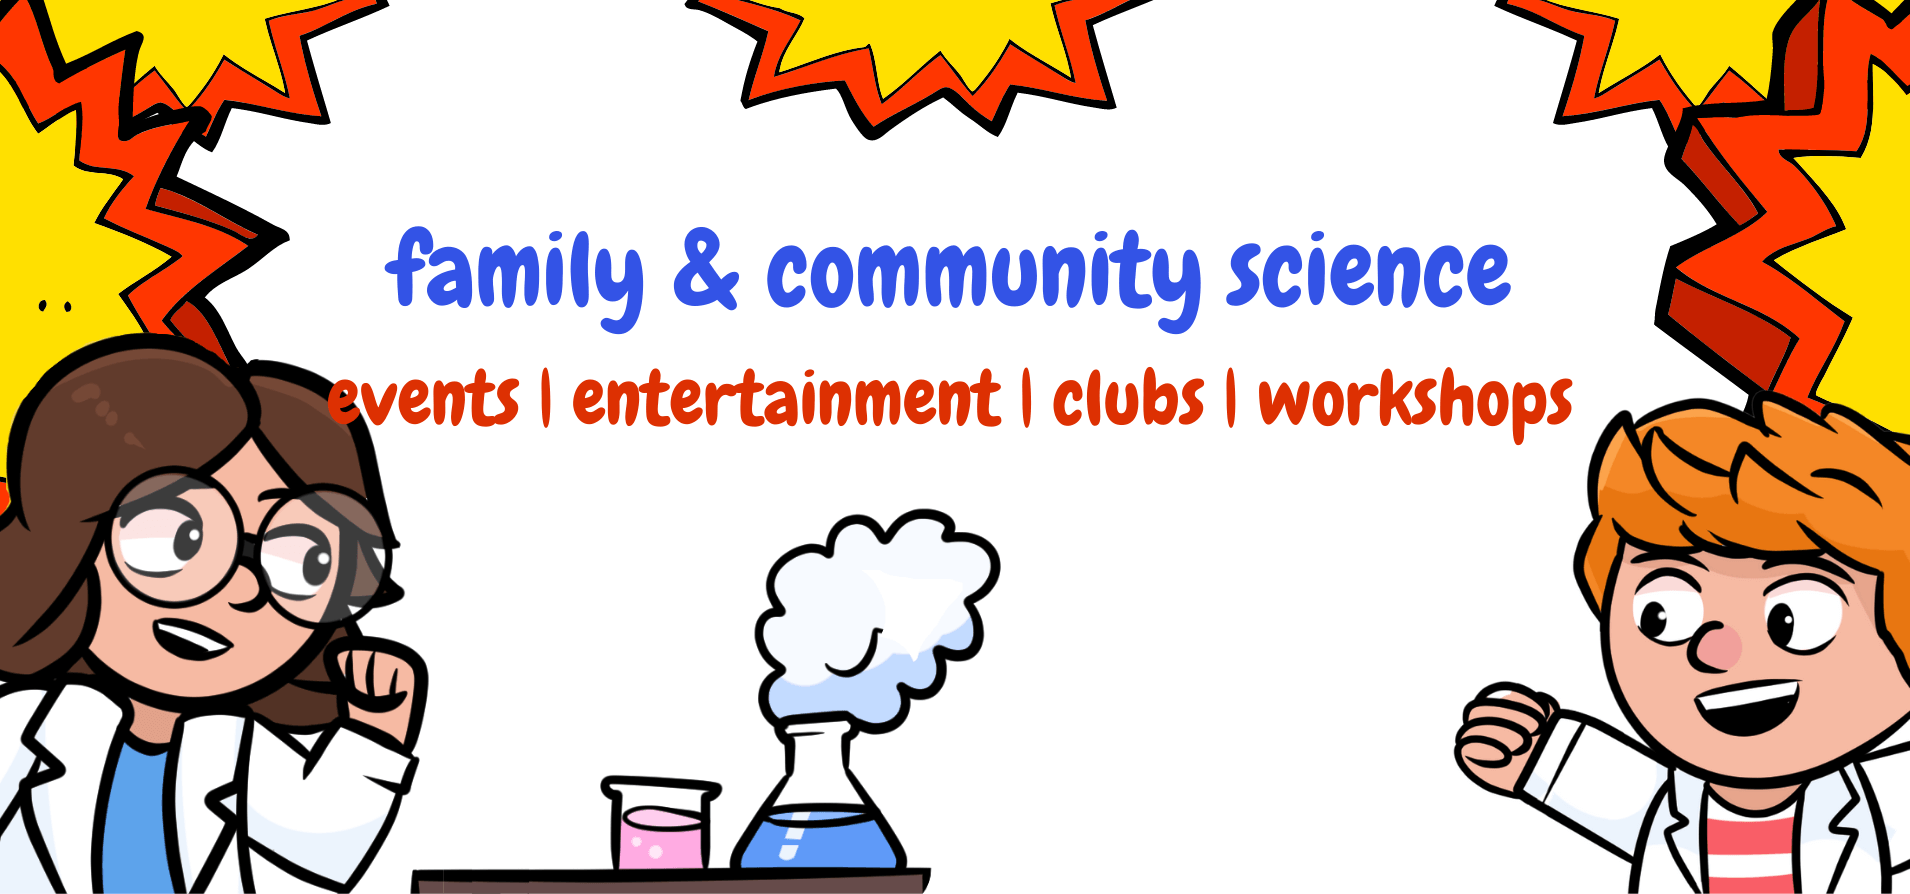 Family & community events image